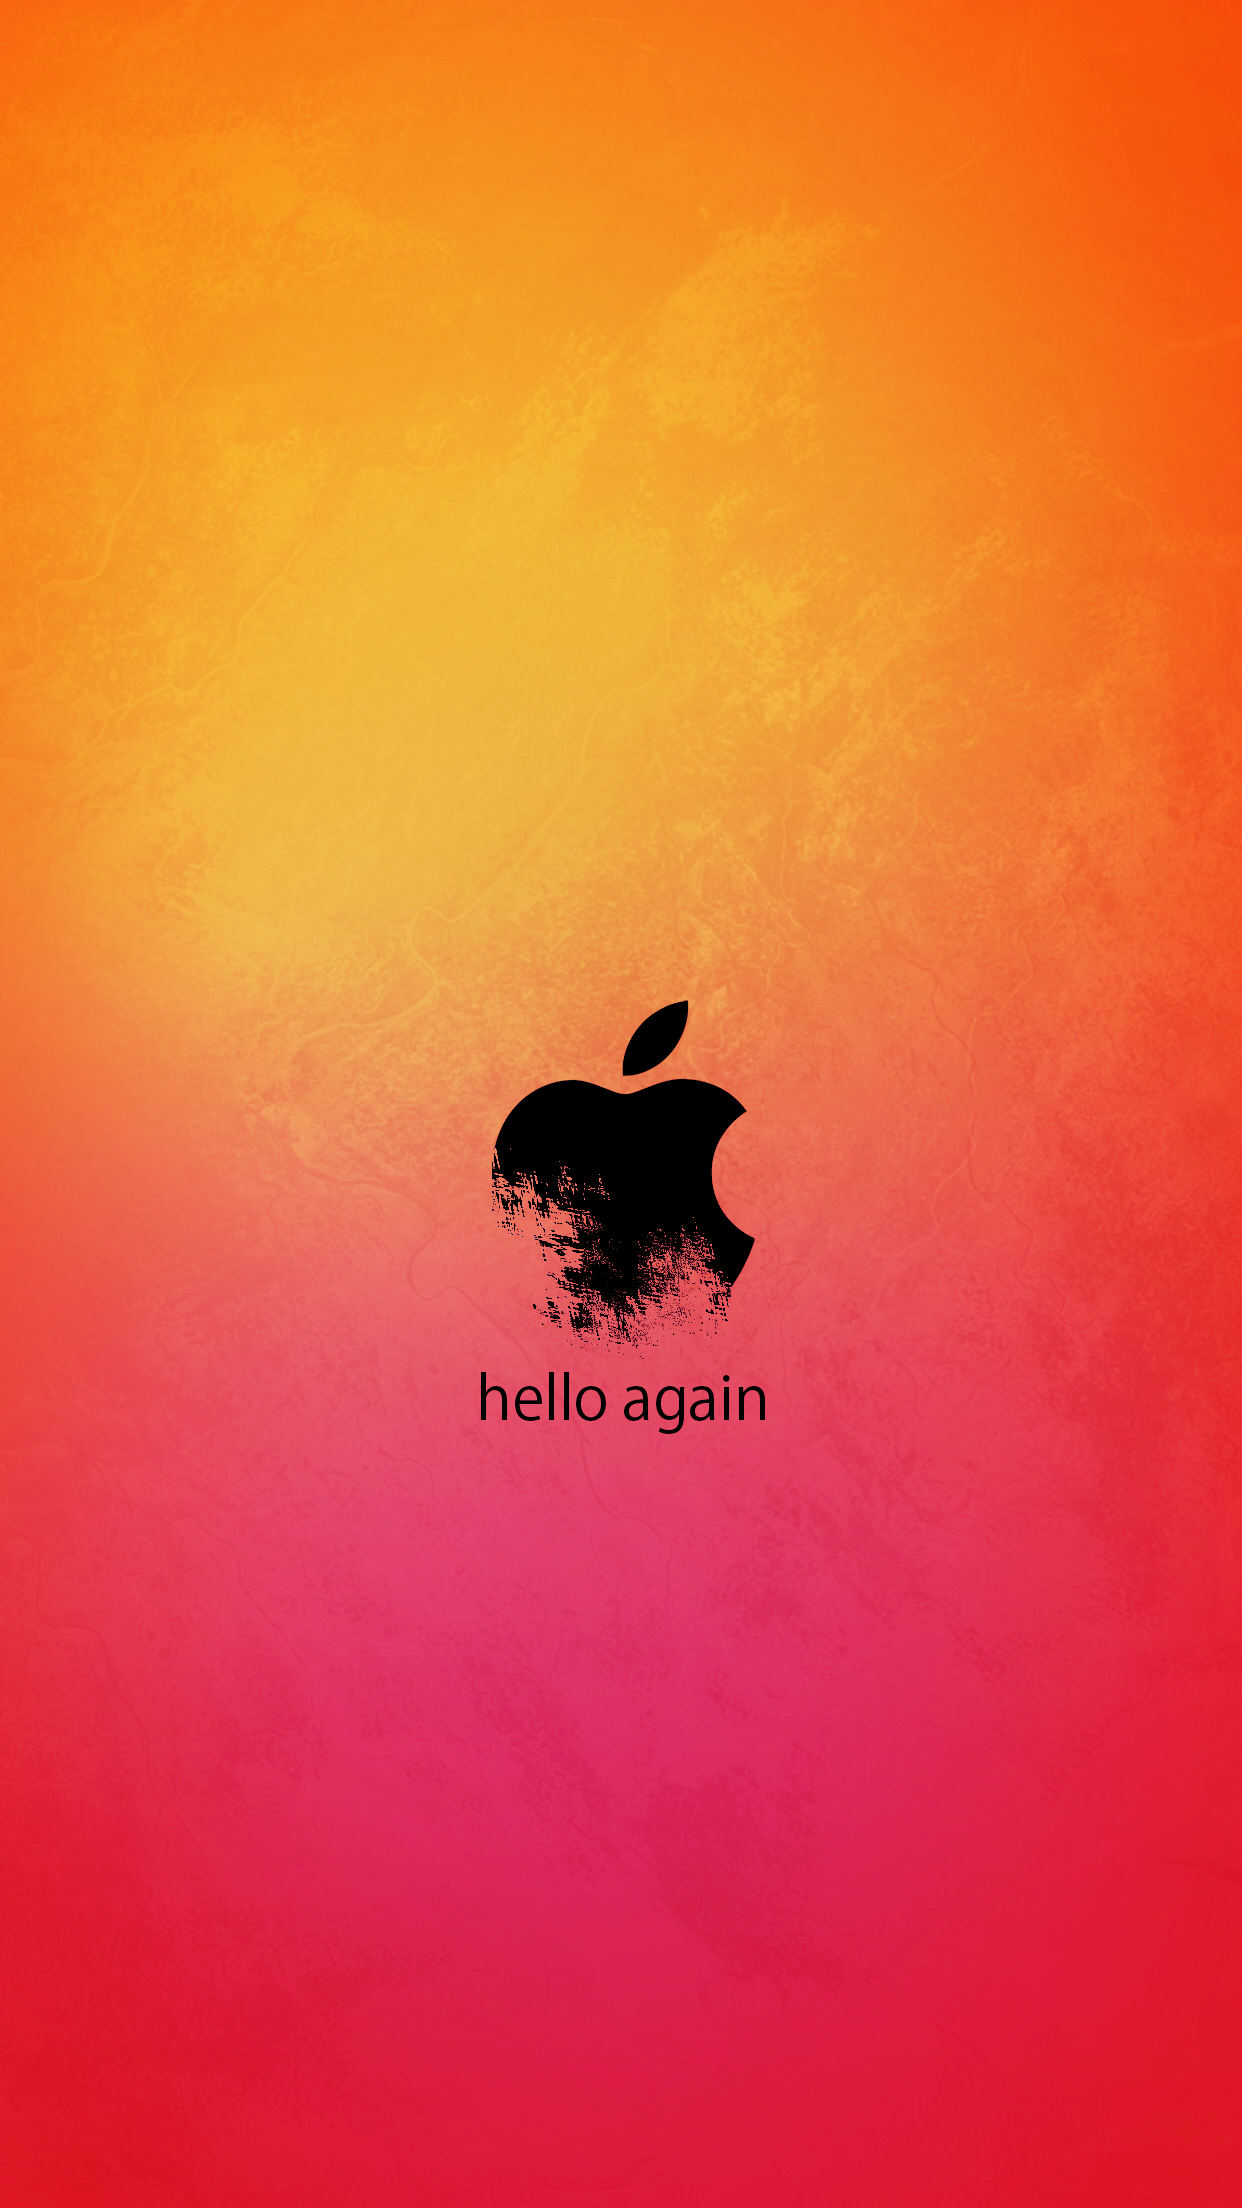 AR72014 inverse October 27 Apple Event hello again